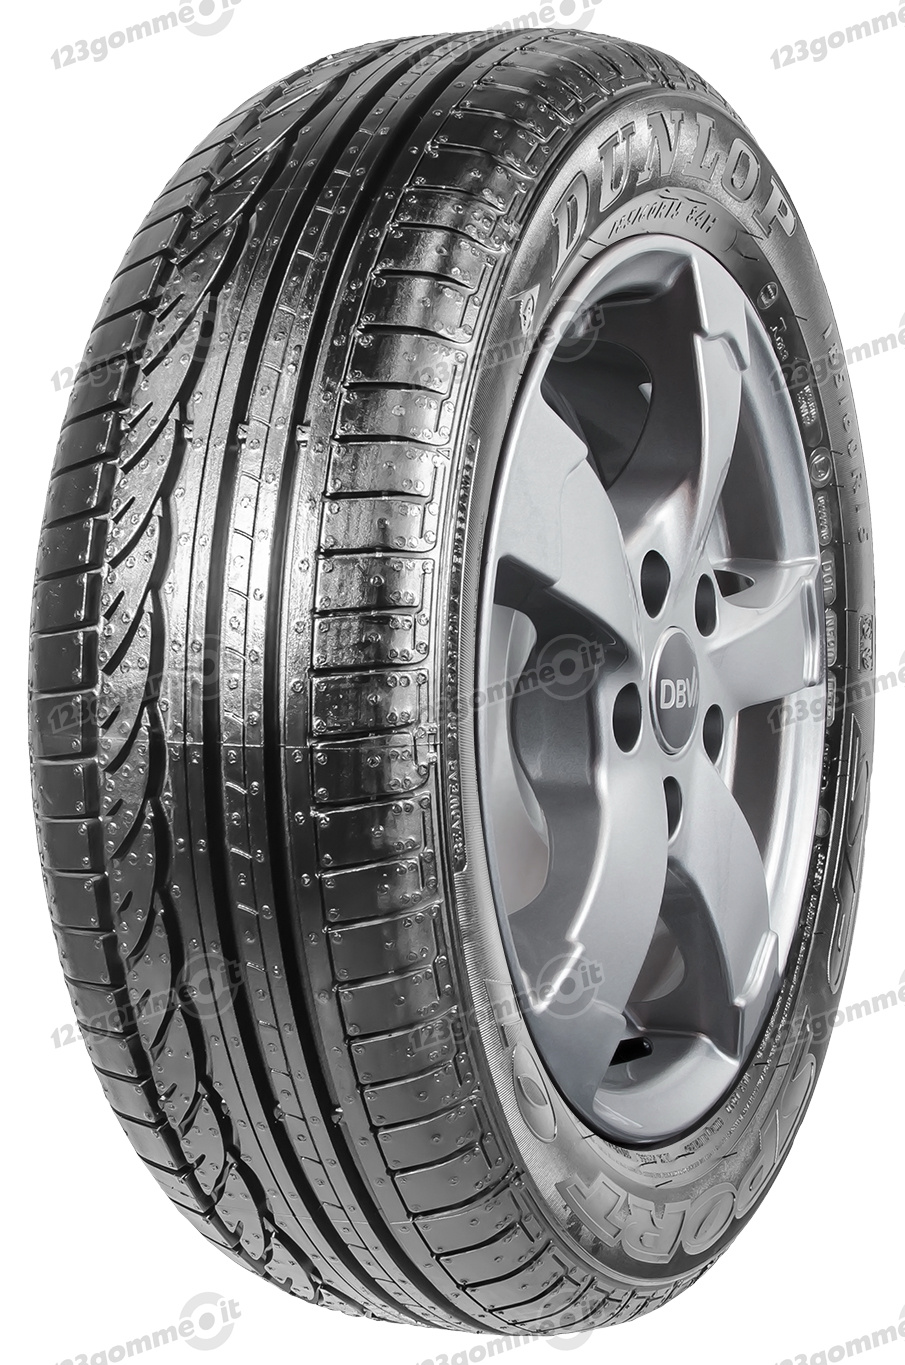 255/45 R18 103Y SP Sport 01 XL MFS  SP Sport 01 XL MFS